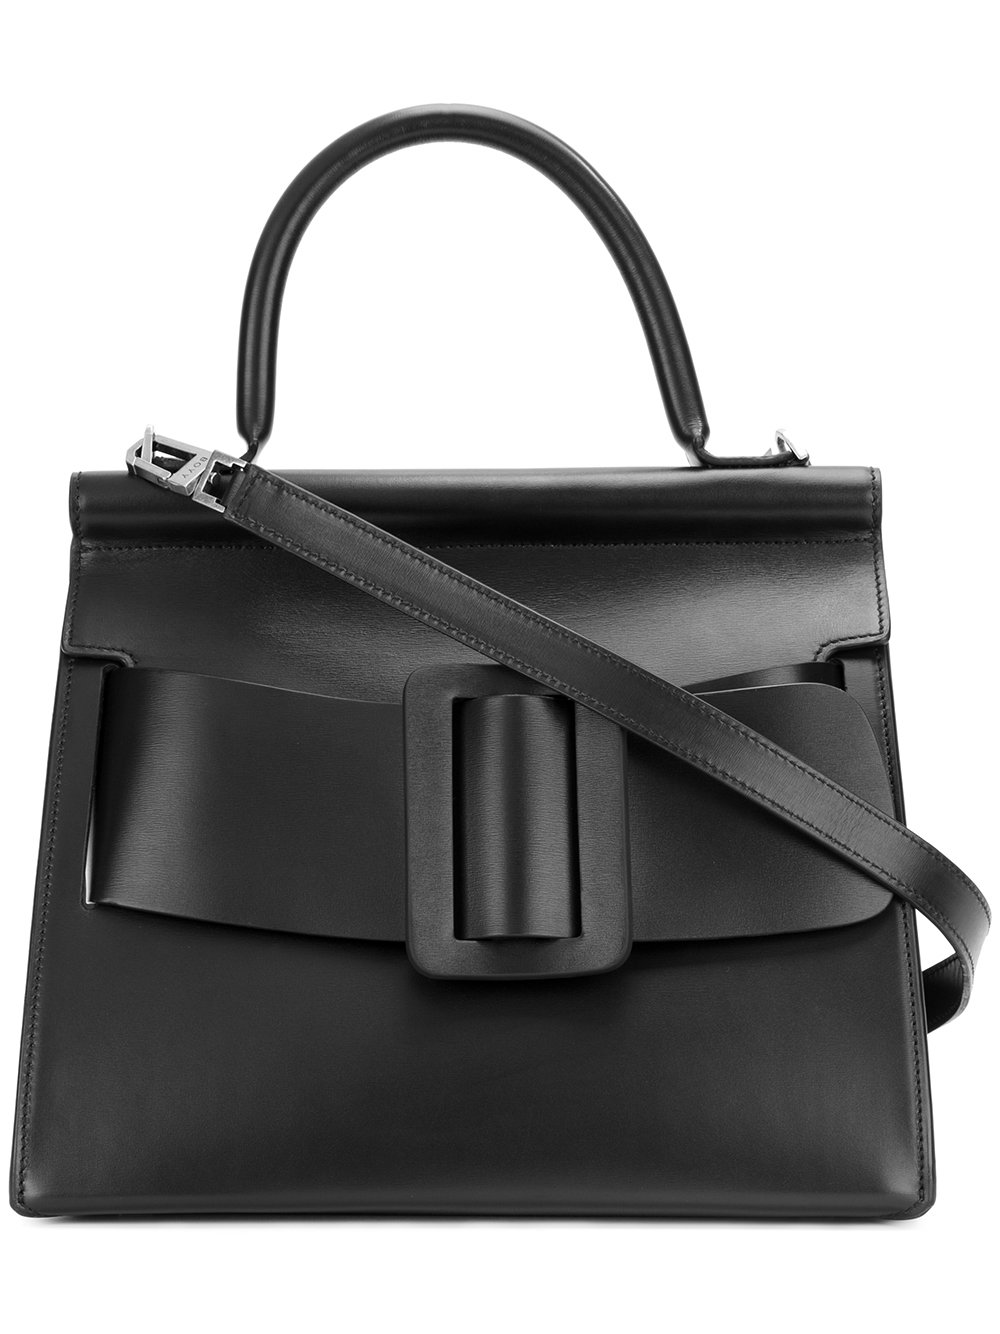 BOYY - tote bag with buckle detail$1.790